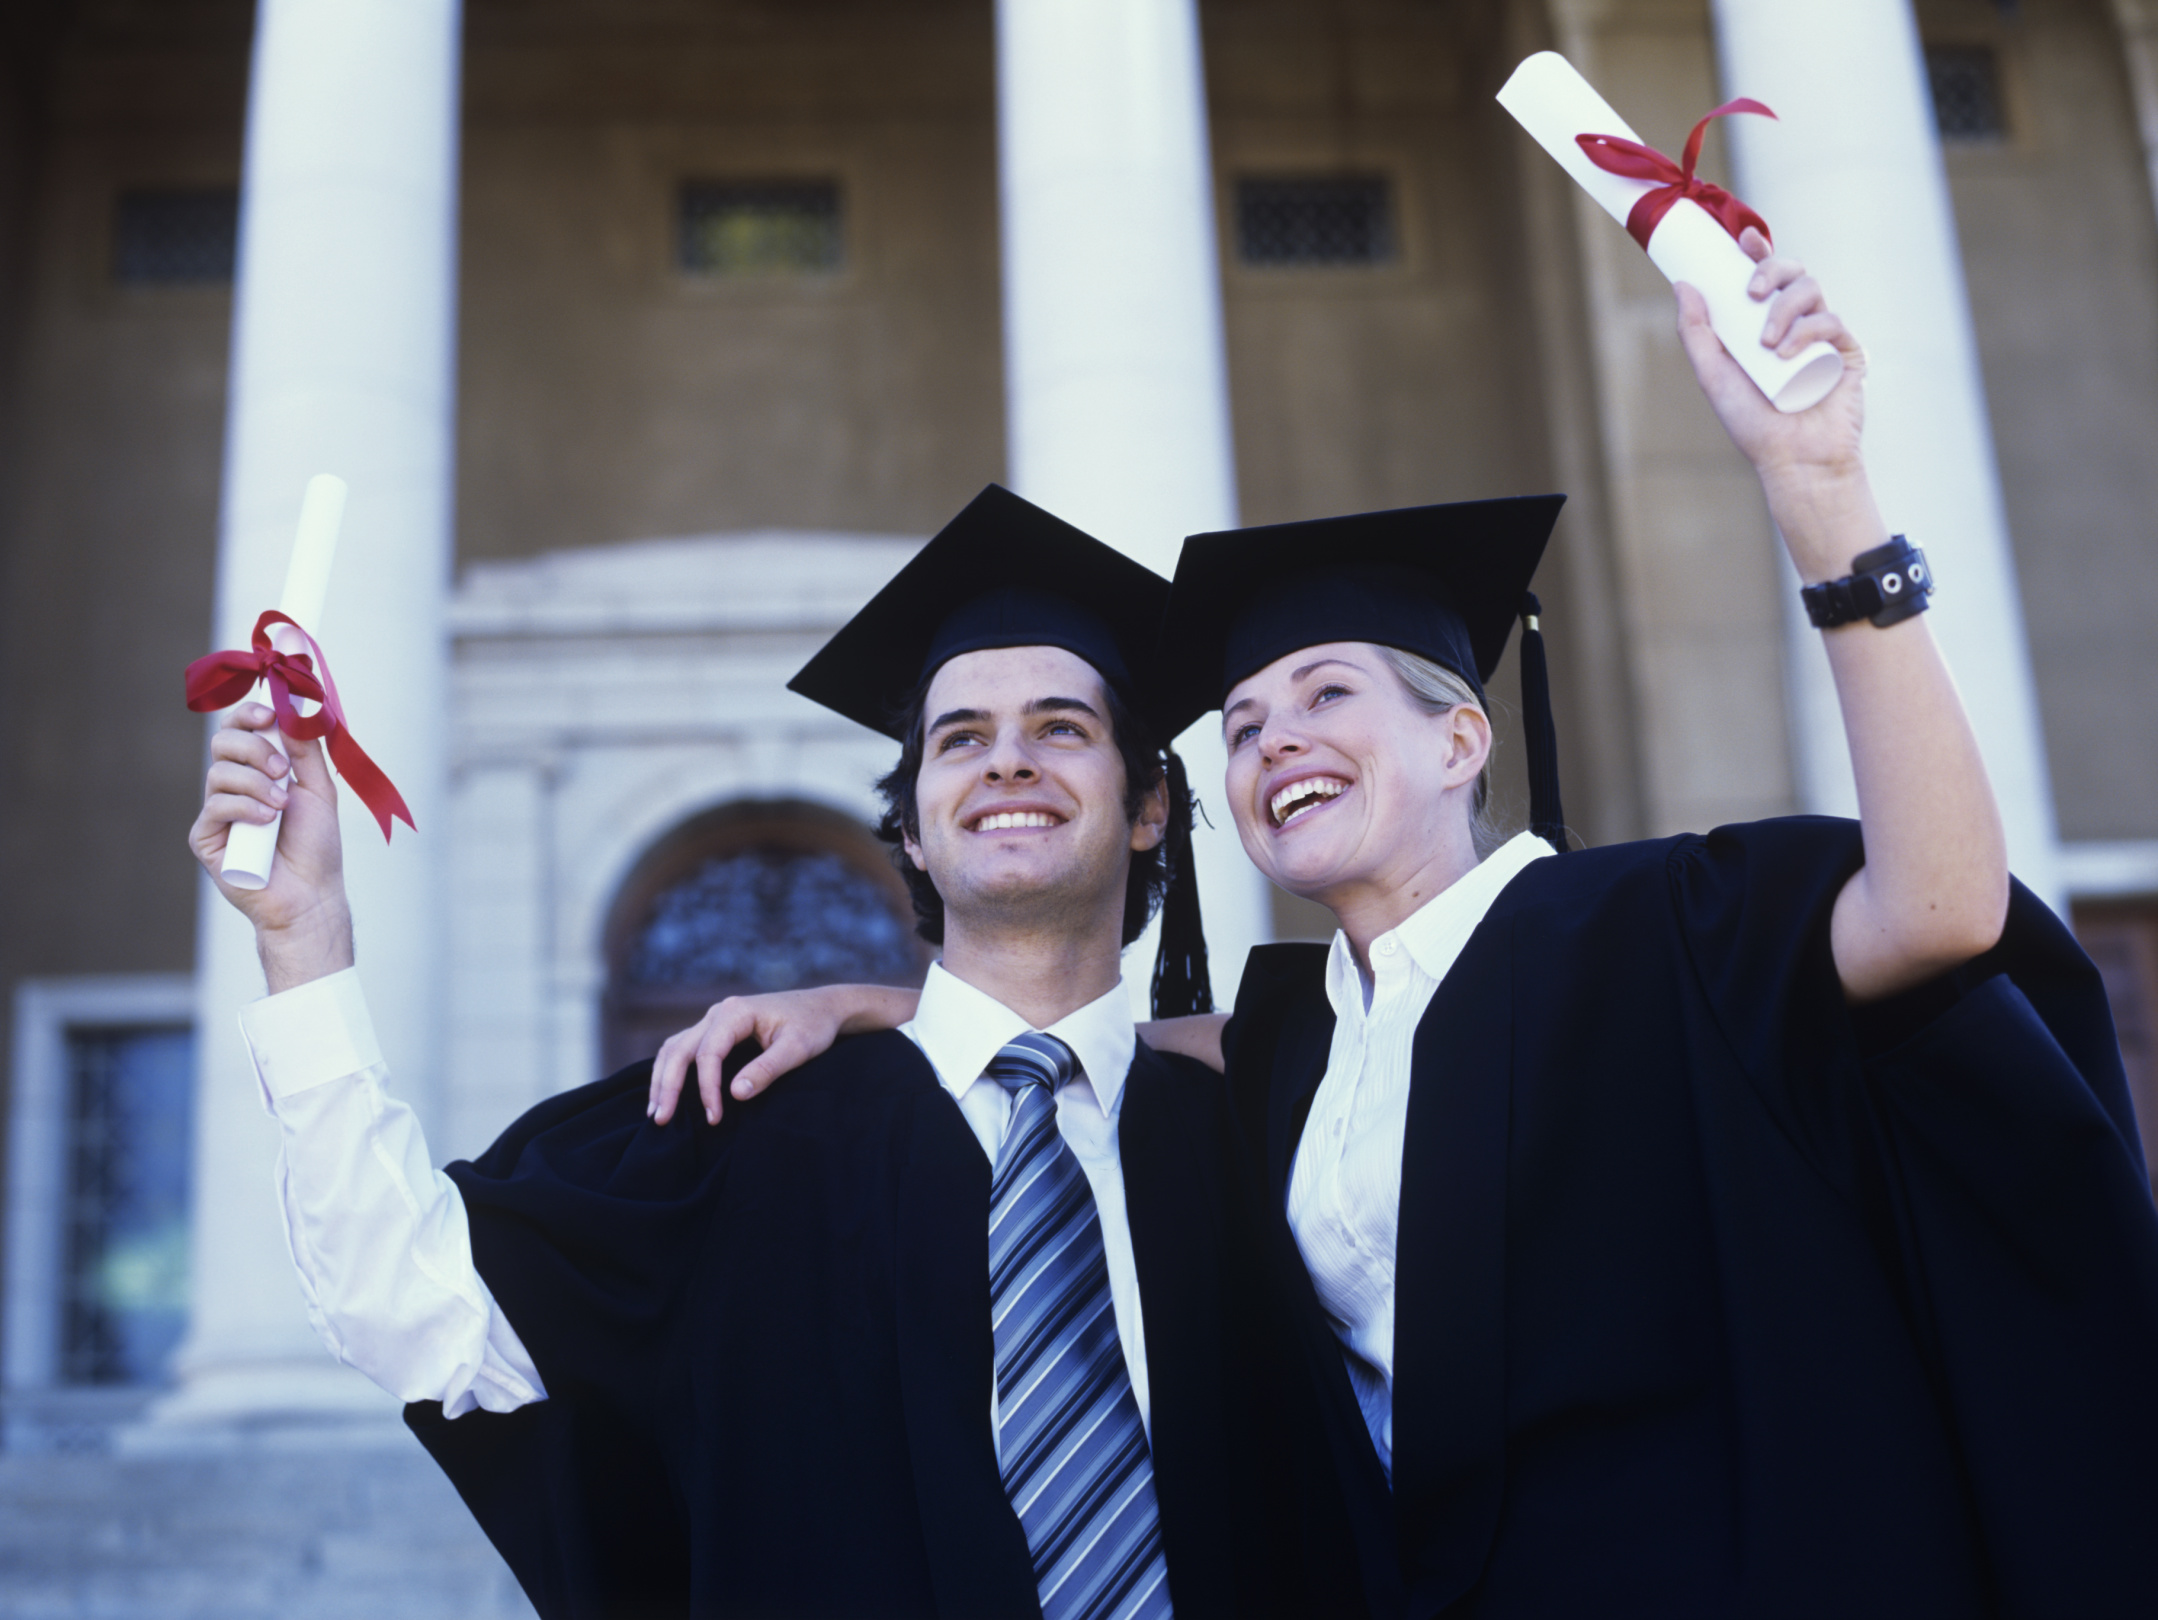 Young graduate couple outside holding scolls, smiling, low angle